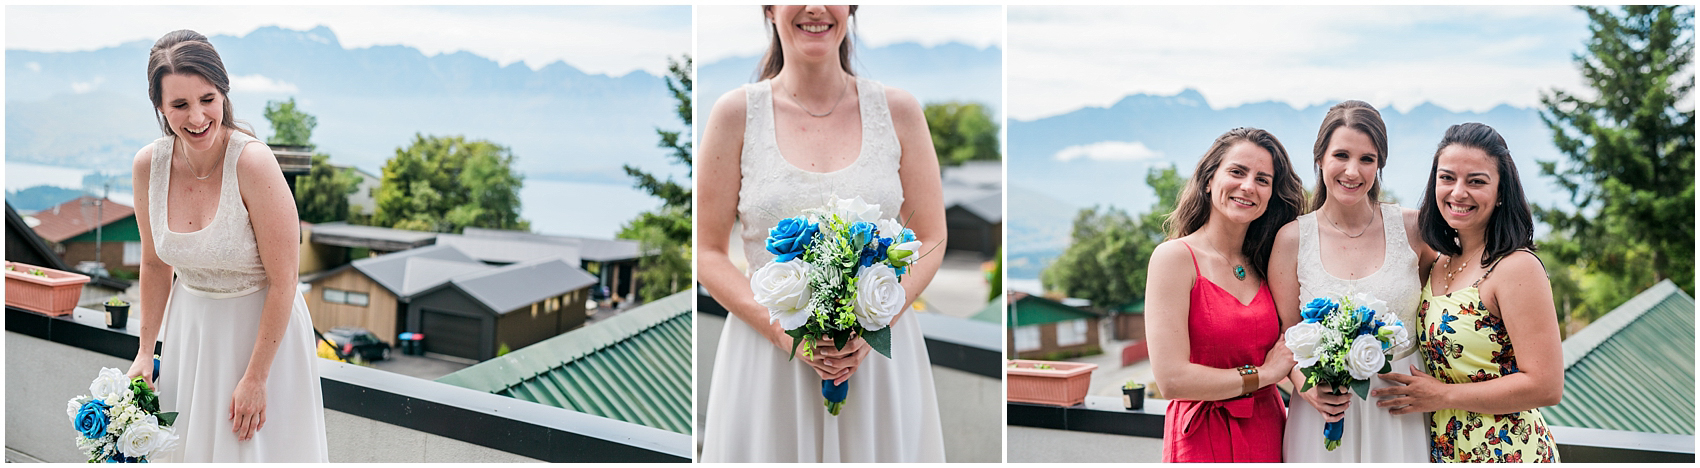 Queenstown New Zealand Wedding Photographer Bruna Fabricio Smetona Photo-0009.jpg